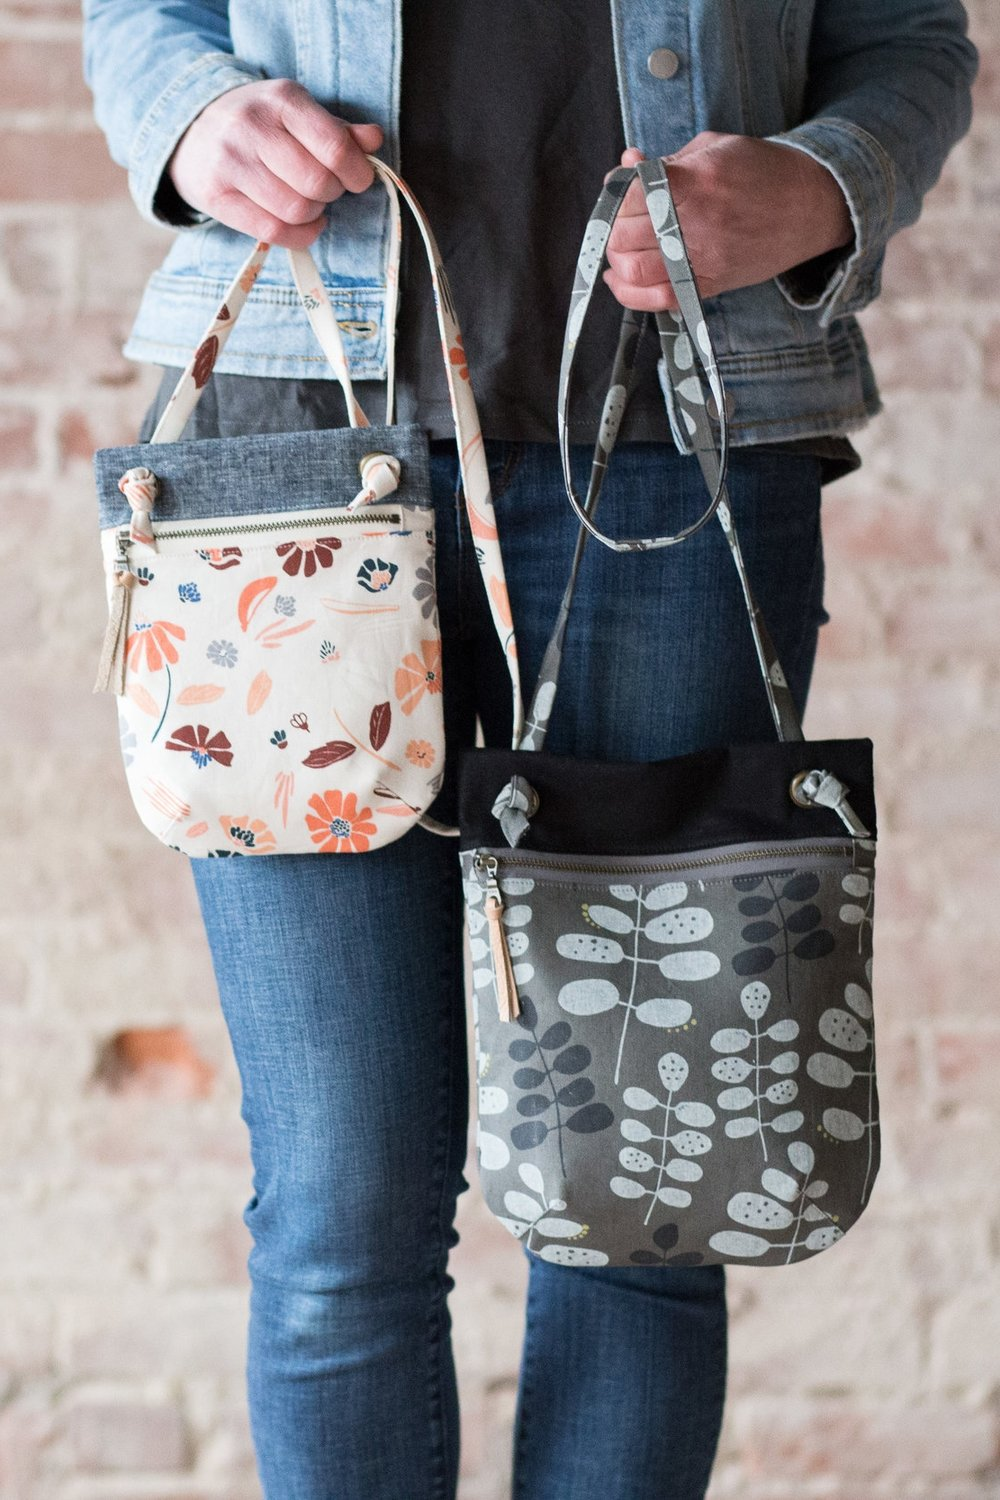 Forage bag sewing pattern from Noodlehead